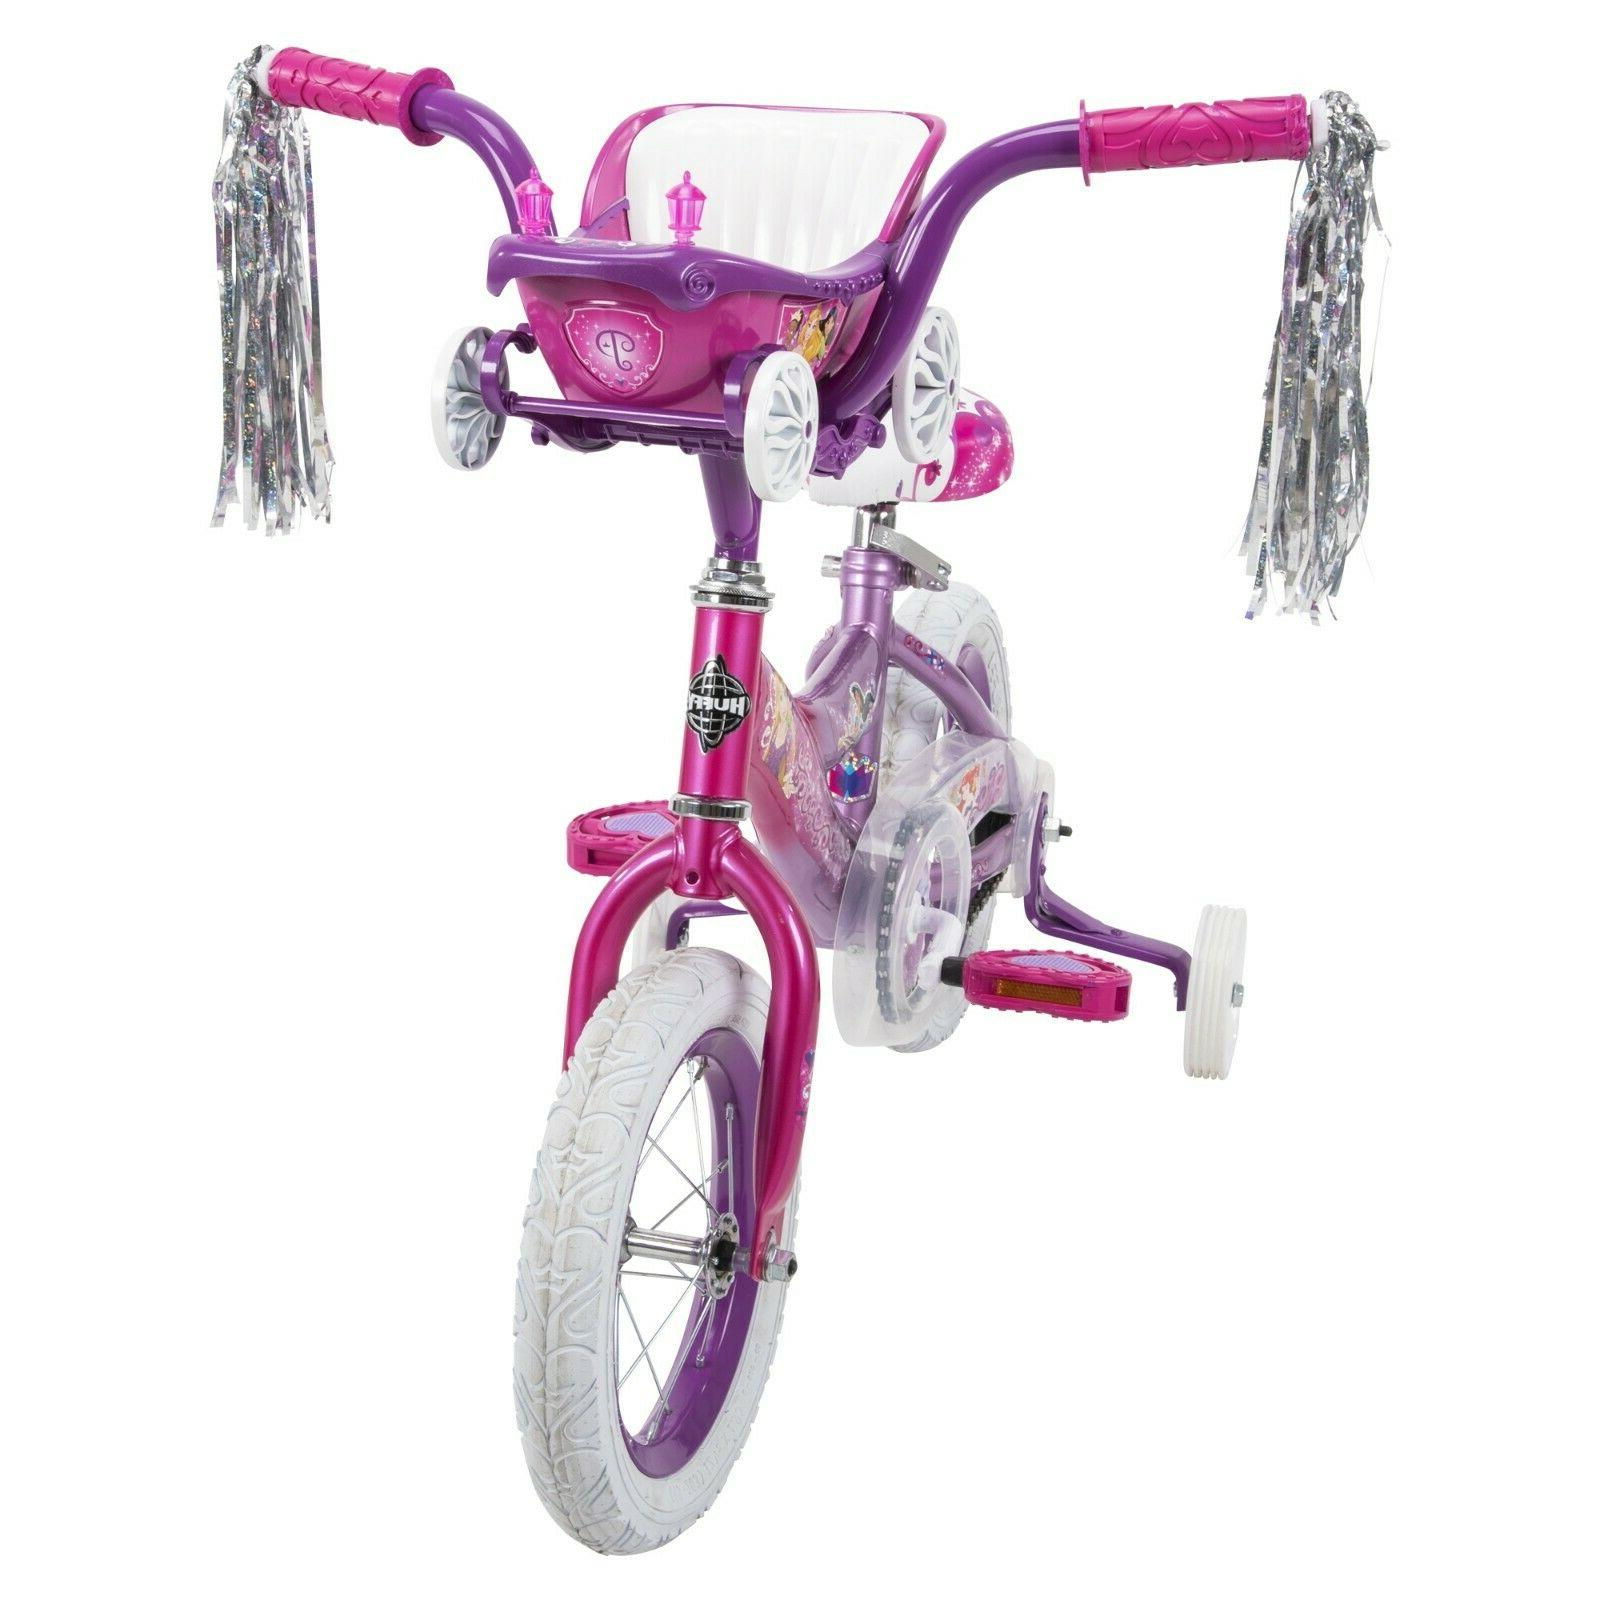 Huffy Bike with